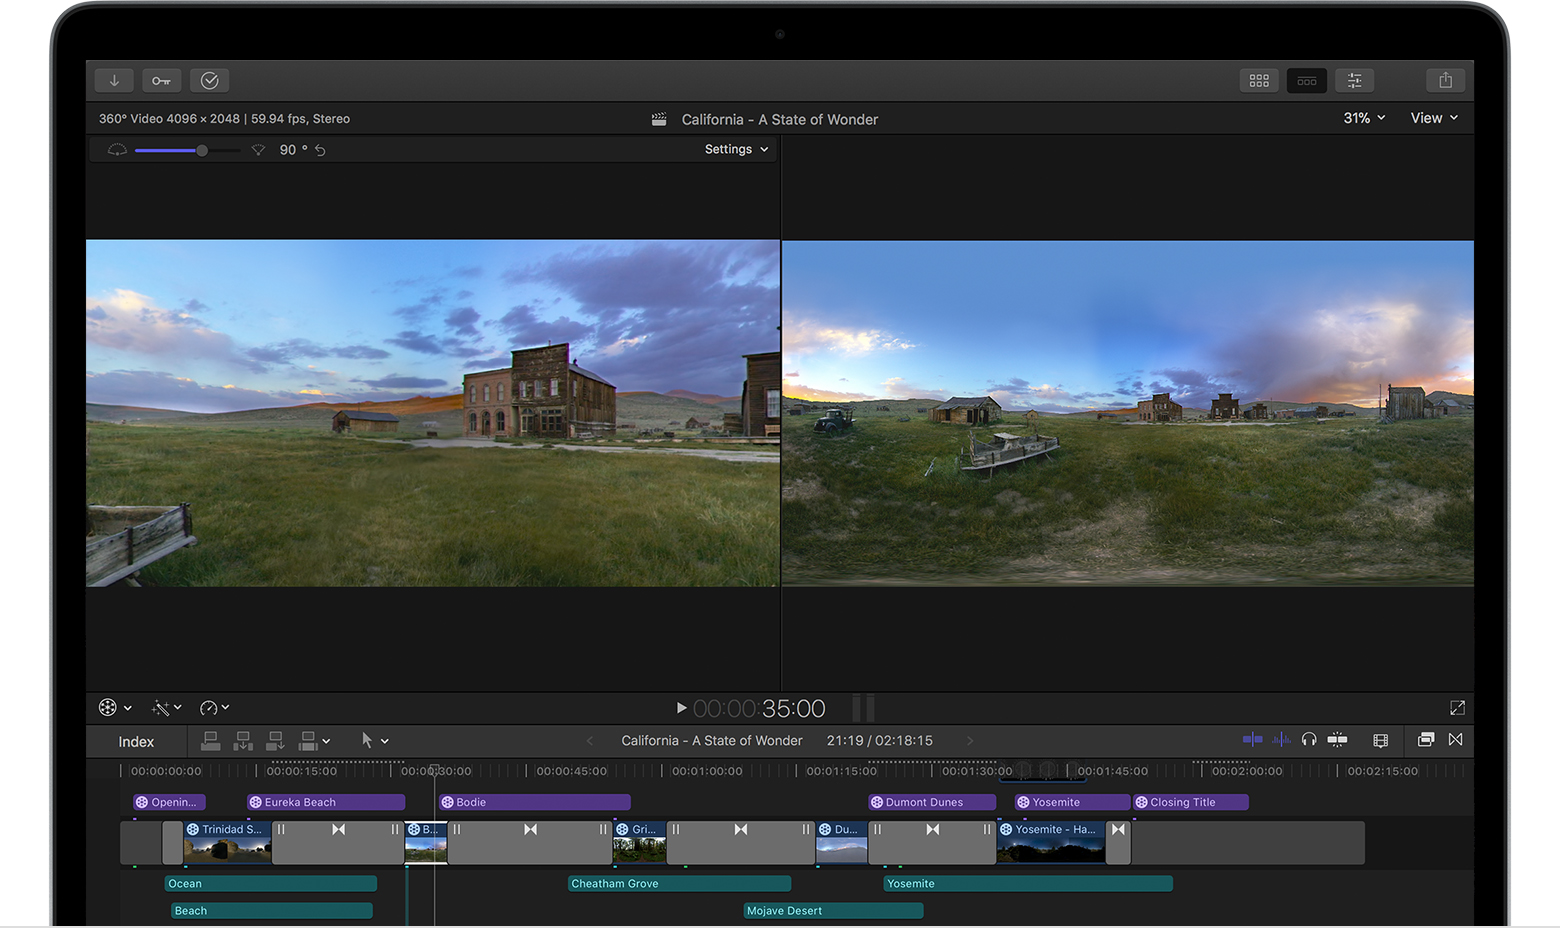 79f67ae30c8d3 Edit 360° video in Final Cut Pro X 10.4 - Apple Support